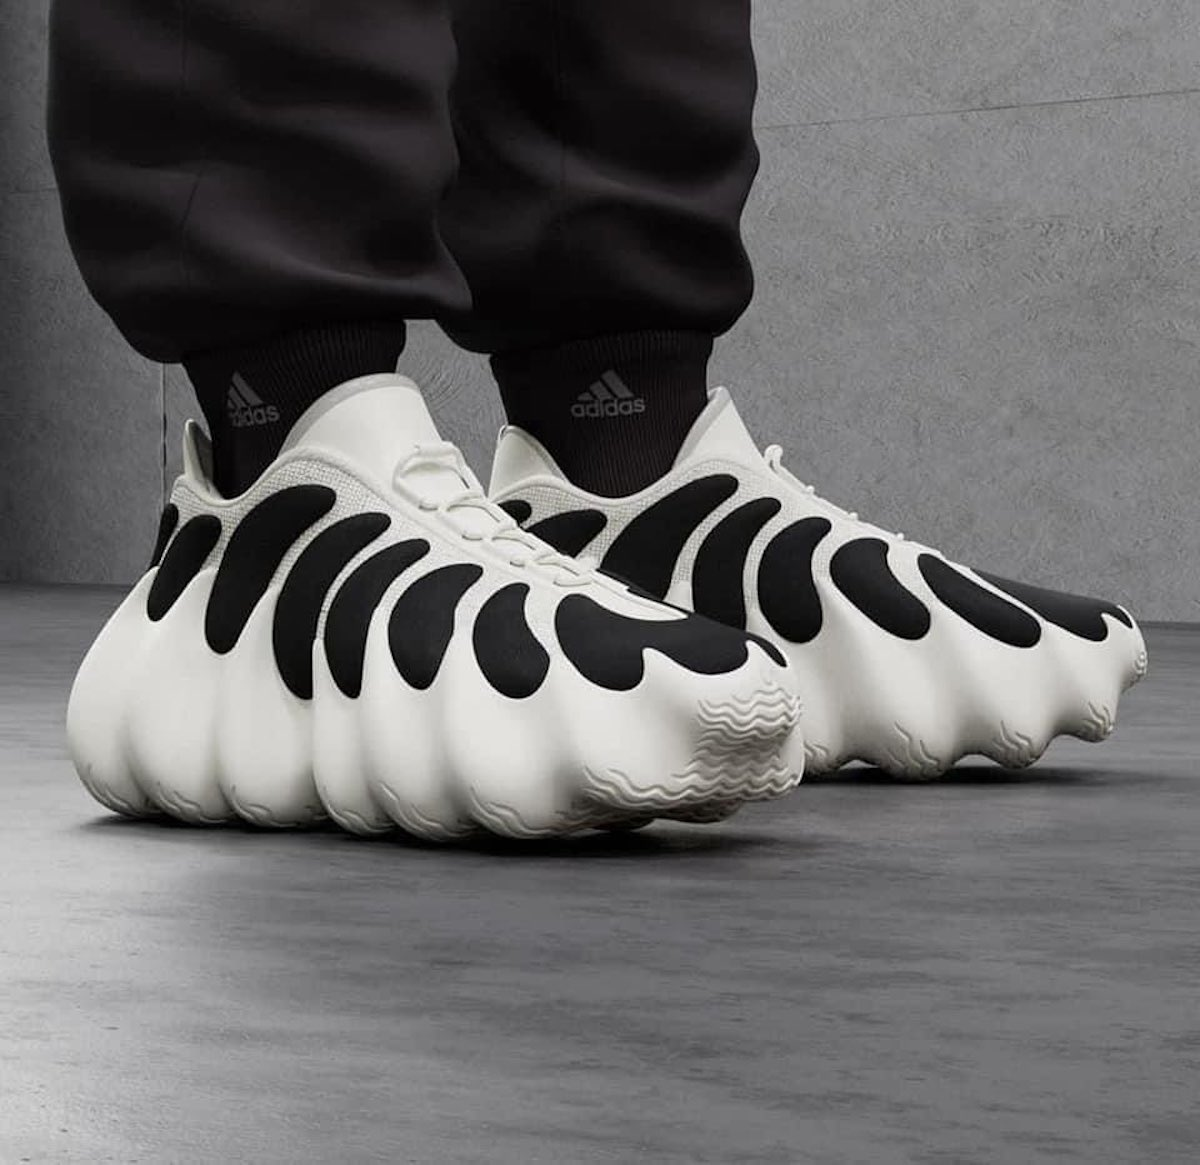 Kanye Has Officially Gone Too Fucking Far With These Shoes